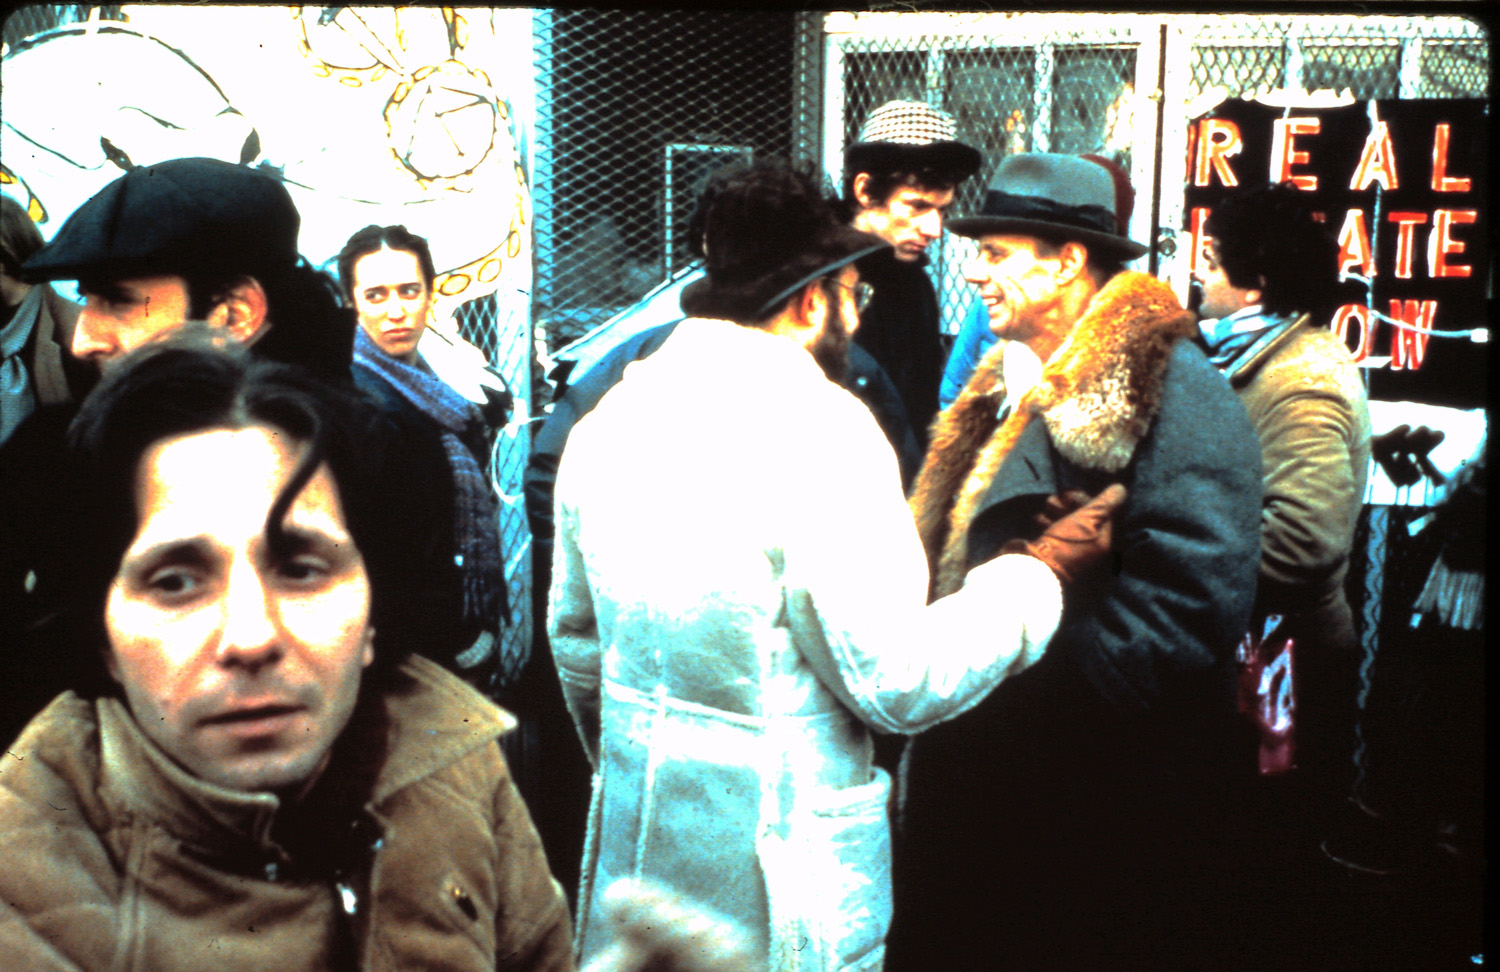 German artist Joseph Beuys (second from right) outside the locked-up Real Estate Show. Photo by Barbara Brooks